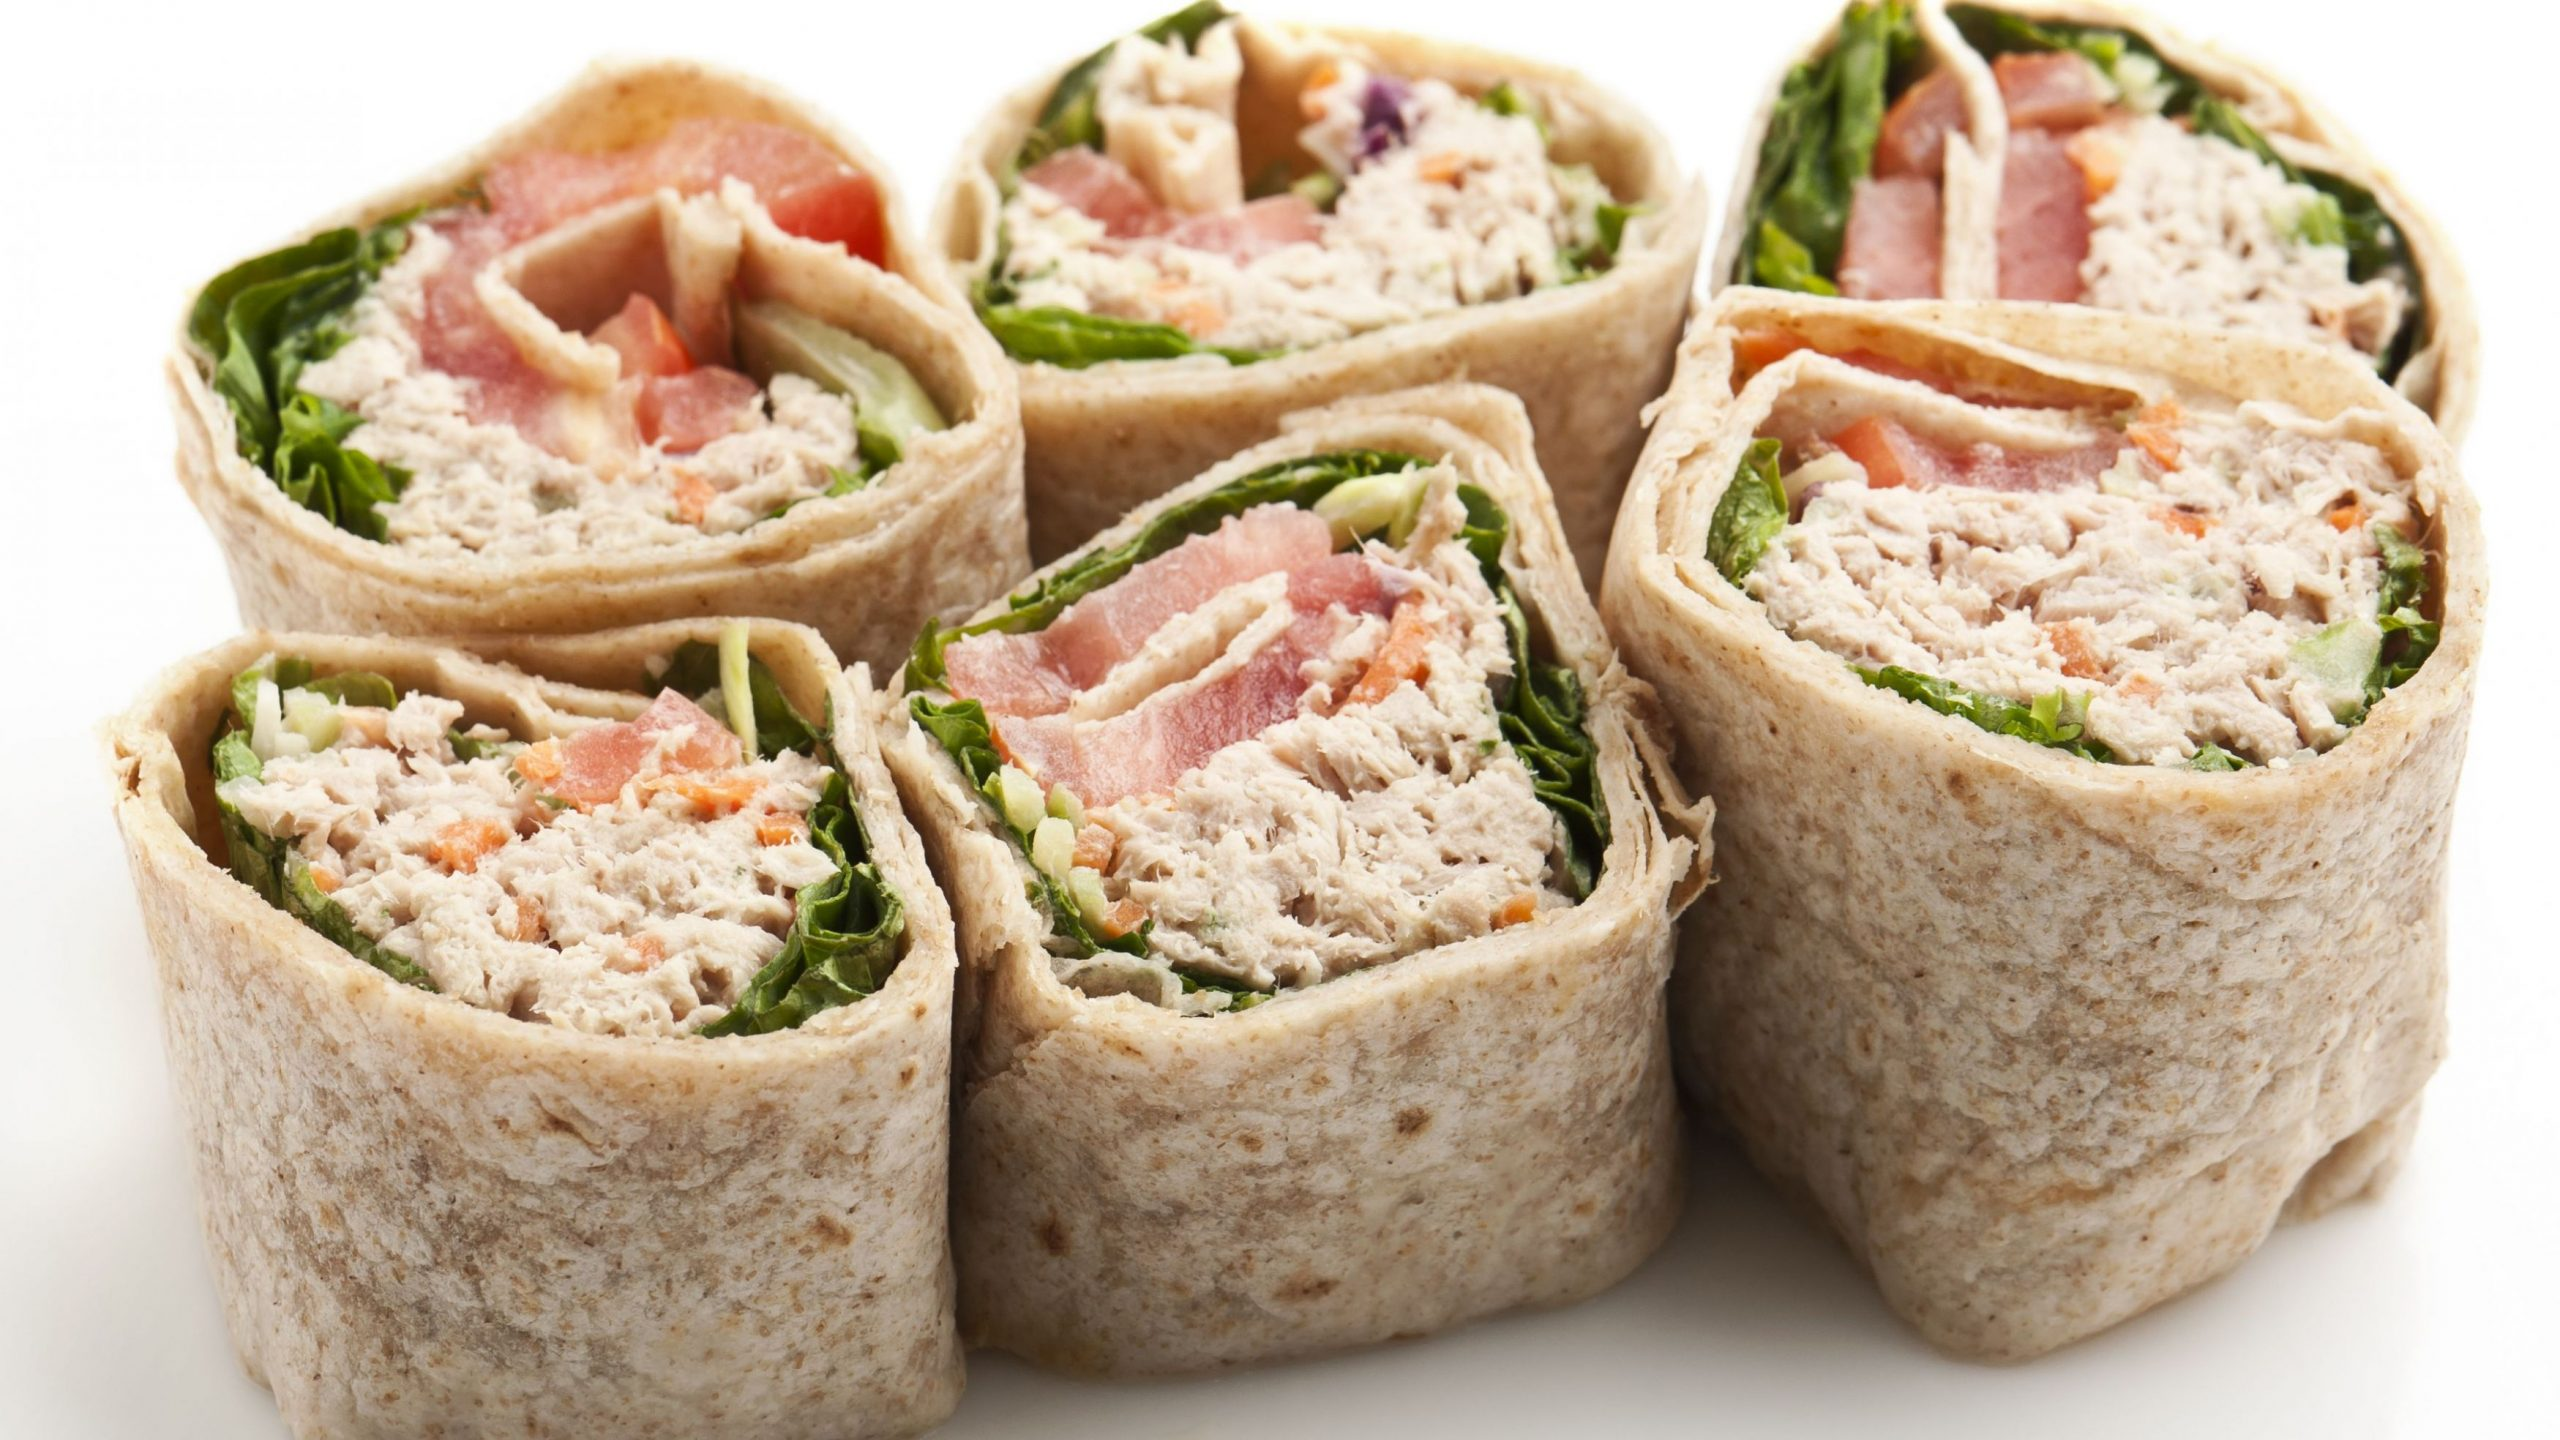 Low-Calorie and Low-Fat Tuna Wrap Recipe - Weight Loss Tuna Recipes